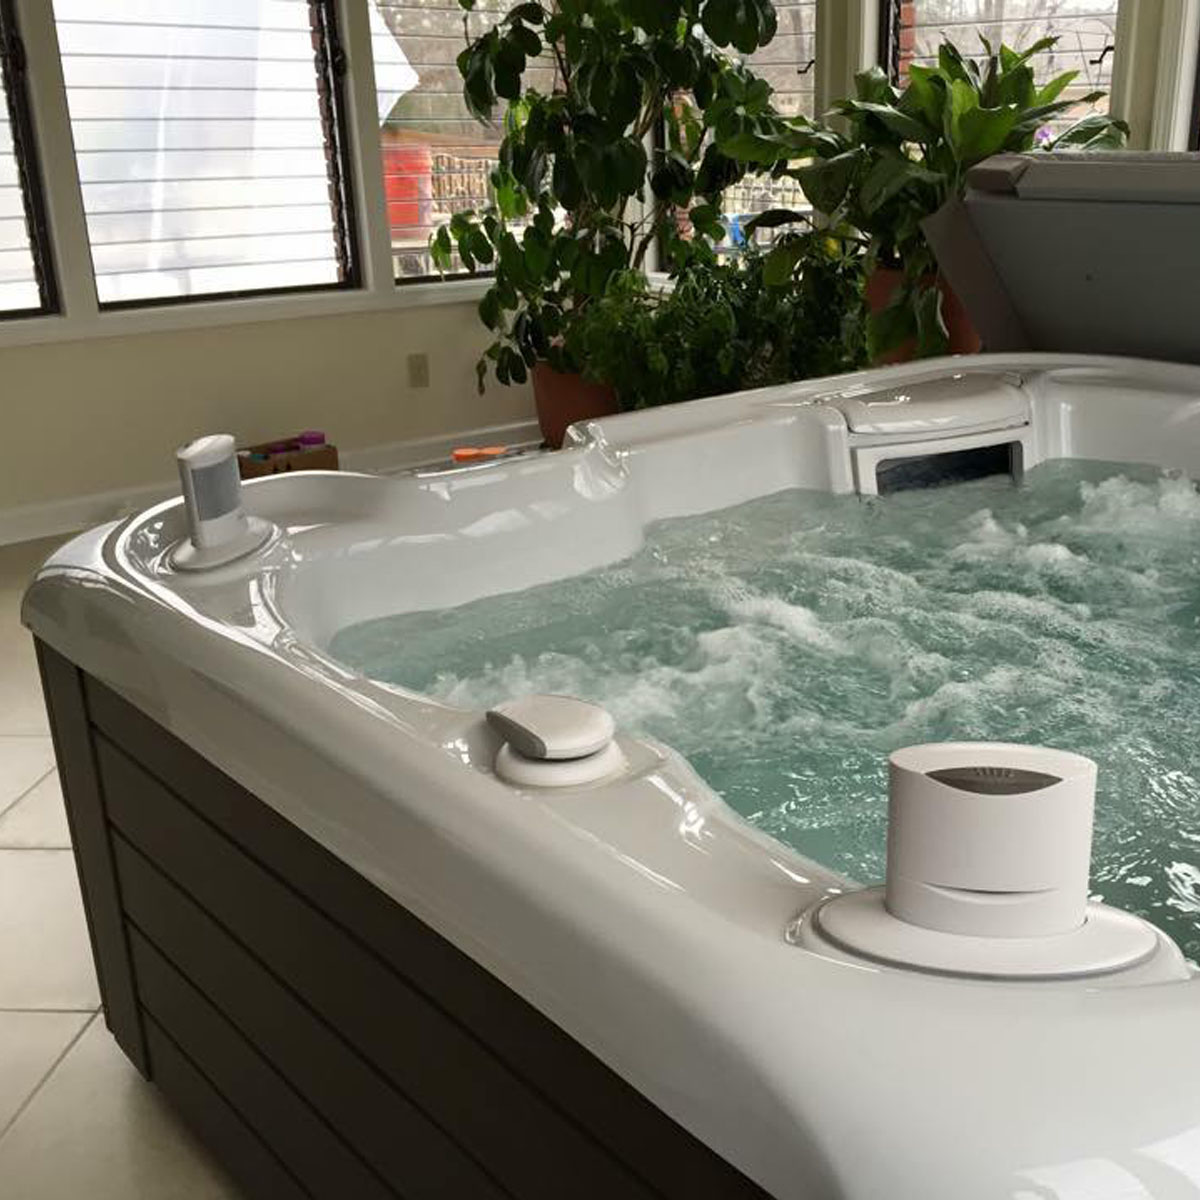 Apartment & Condo Dwellers: 5 Way to Relax Big When You Live Small